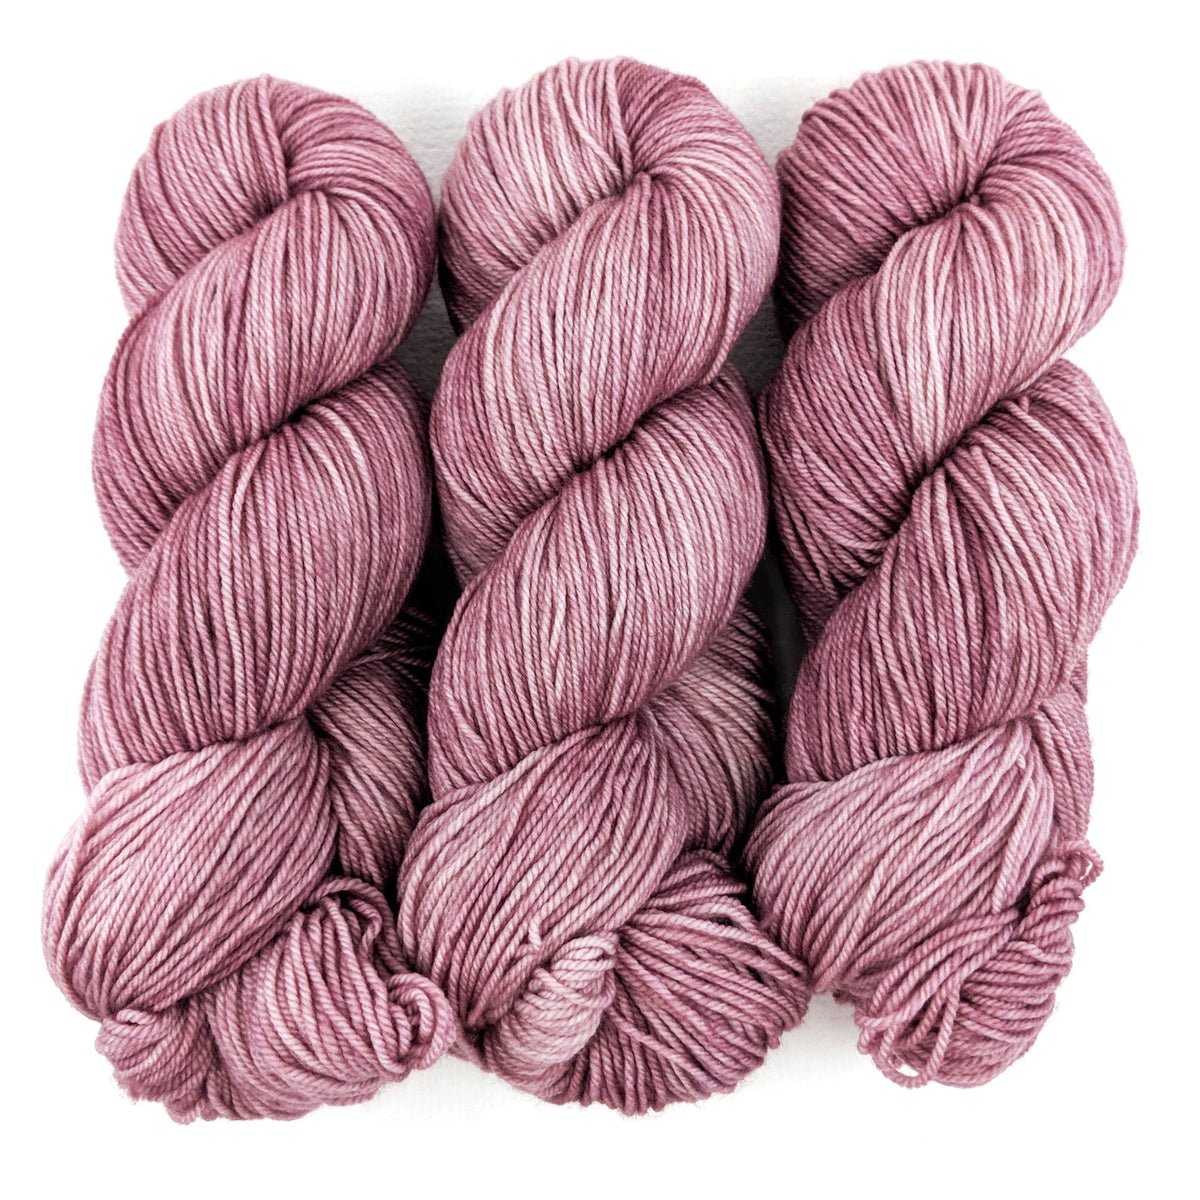 Dusty Rose - Revival Fingering - Dyed Stock